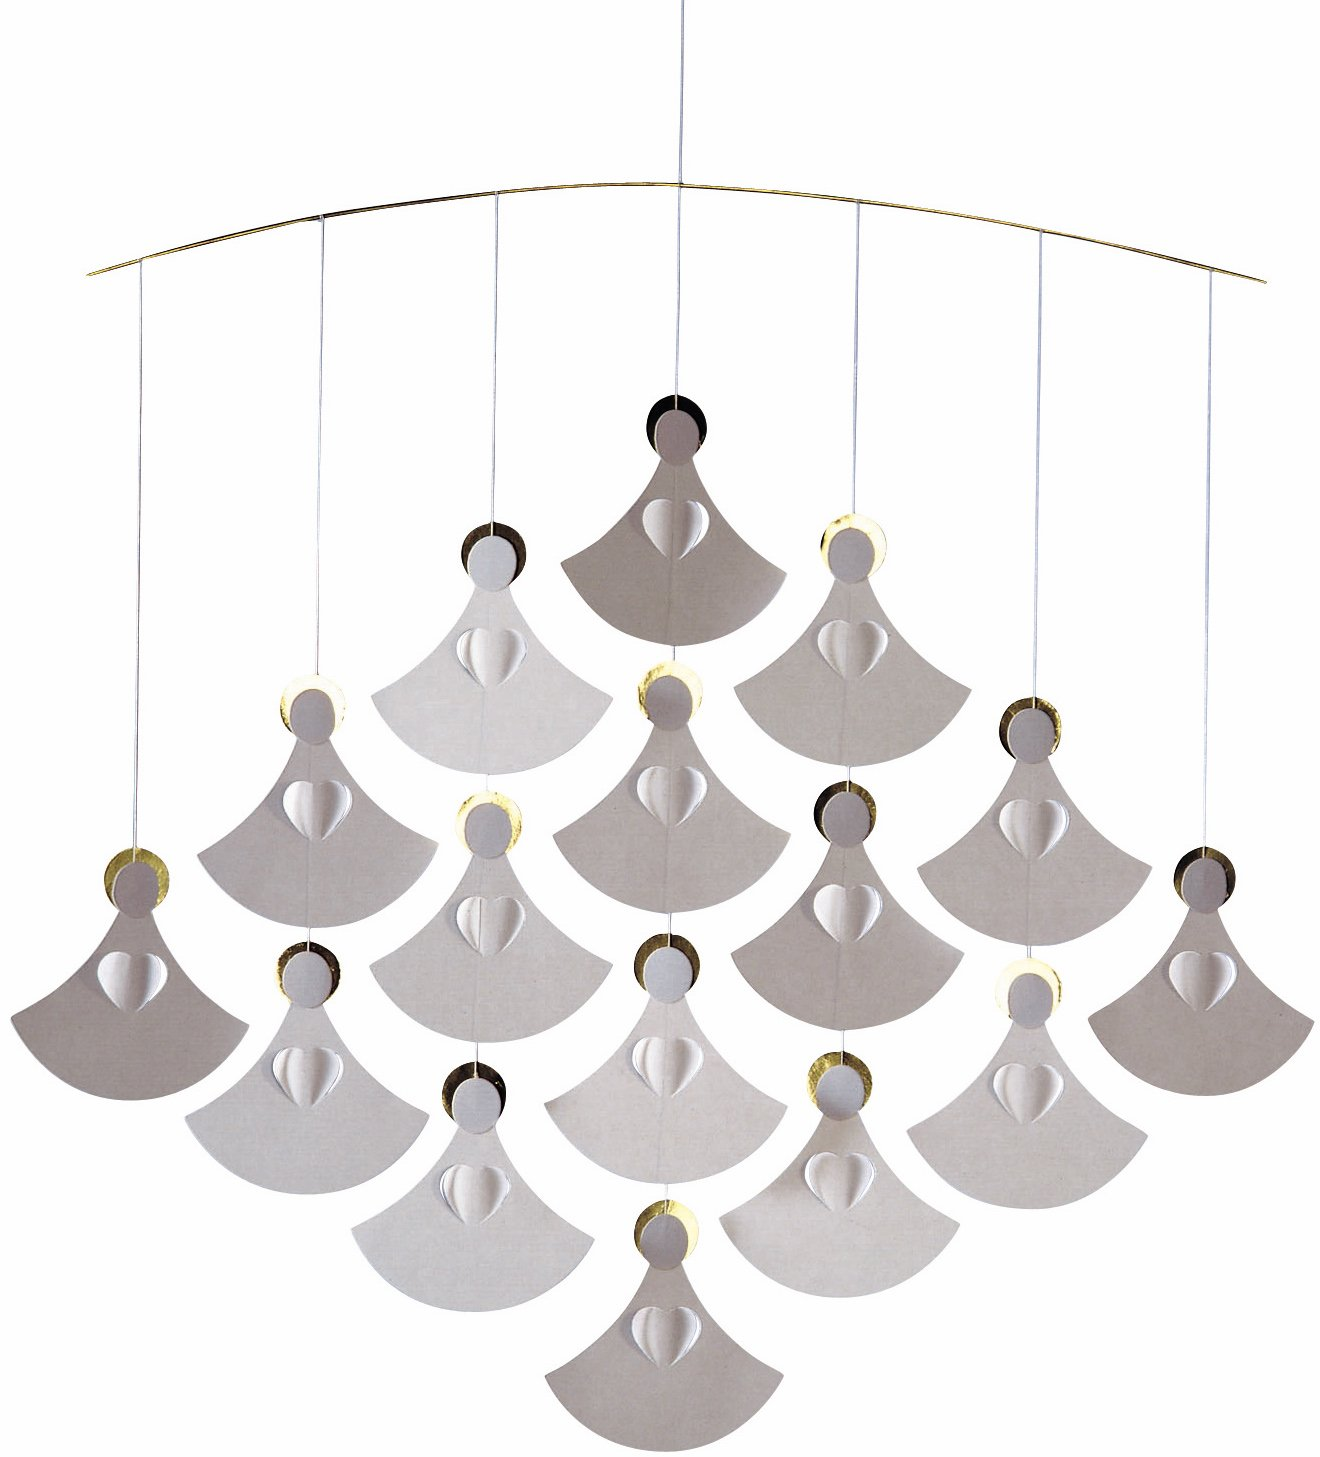 Angel Chorus (16 Angels) Hanging Mobile - 18 Inches - Handmade in Denmark by Flensted Flensted Mobiles